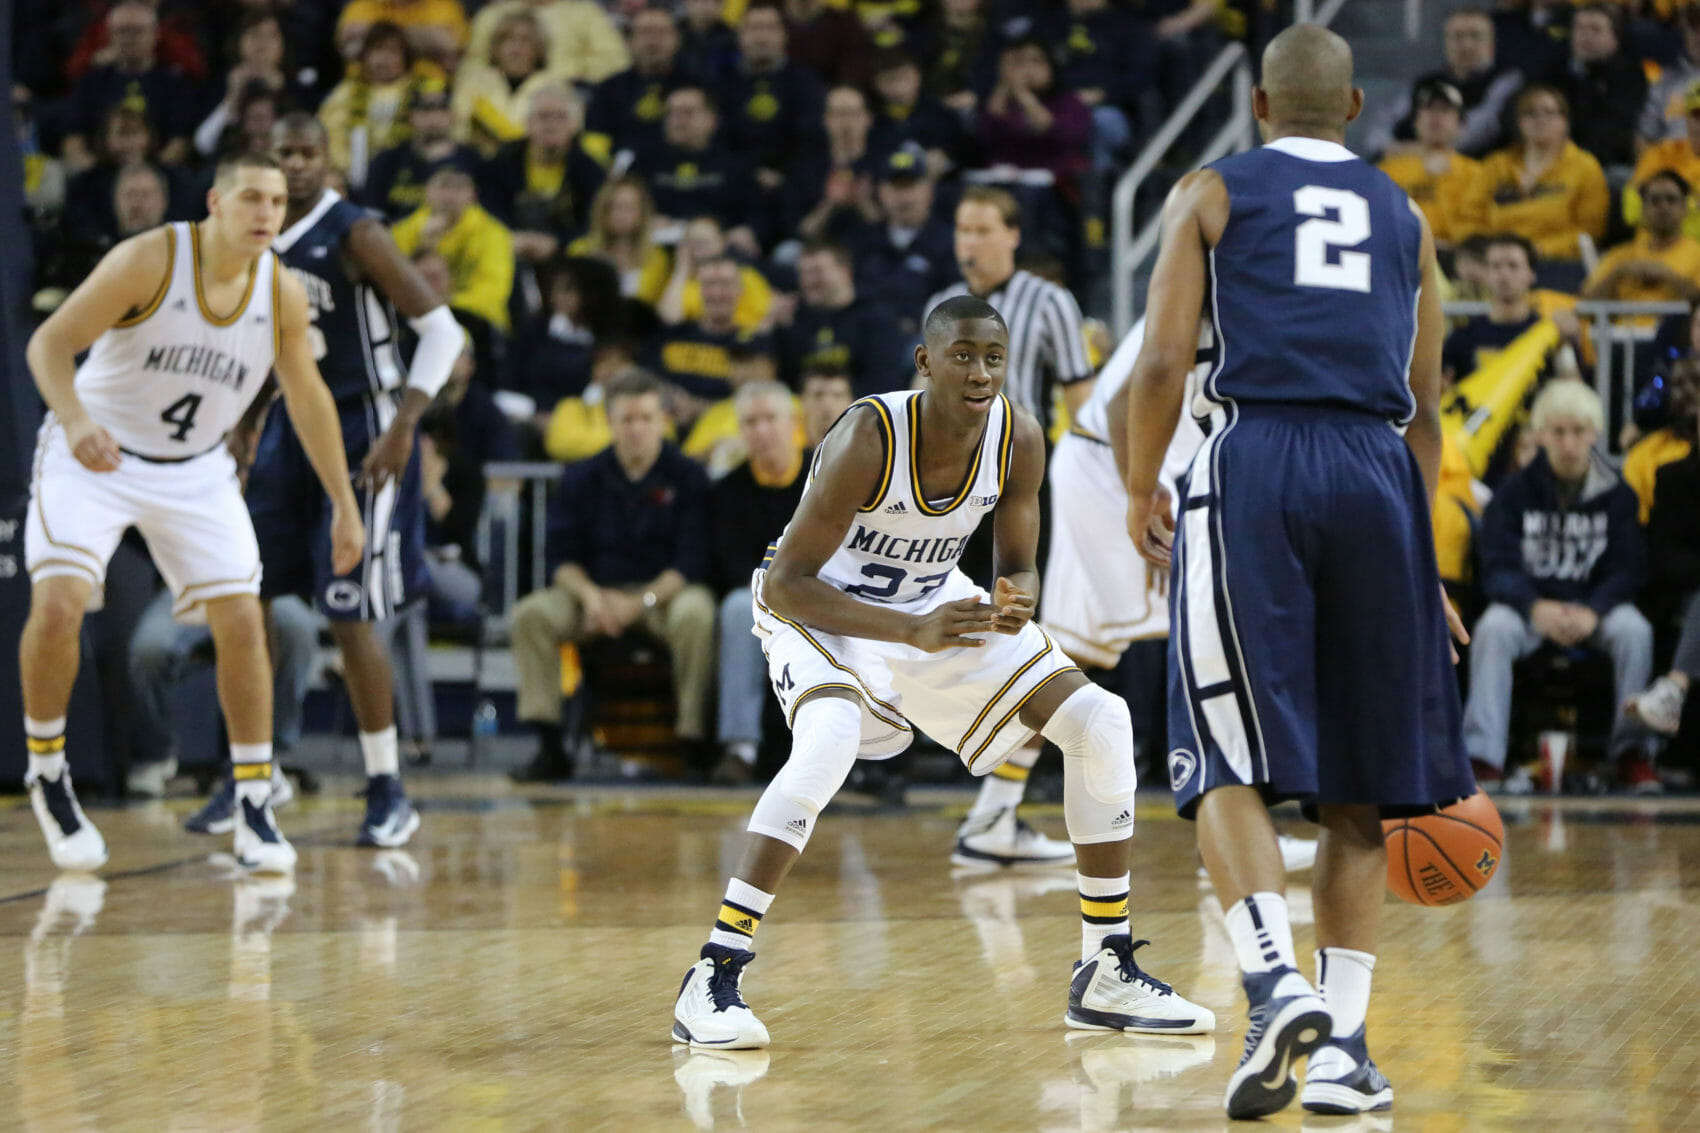 Michigan 79, Penn St. 71-3